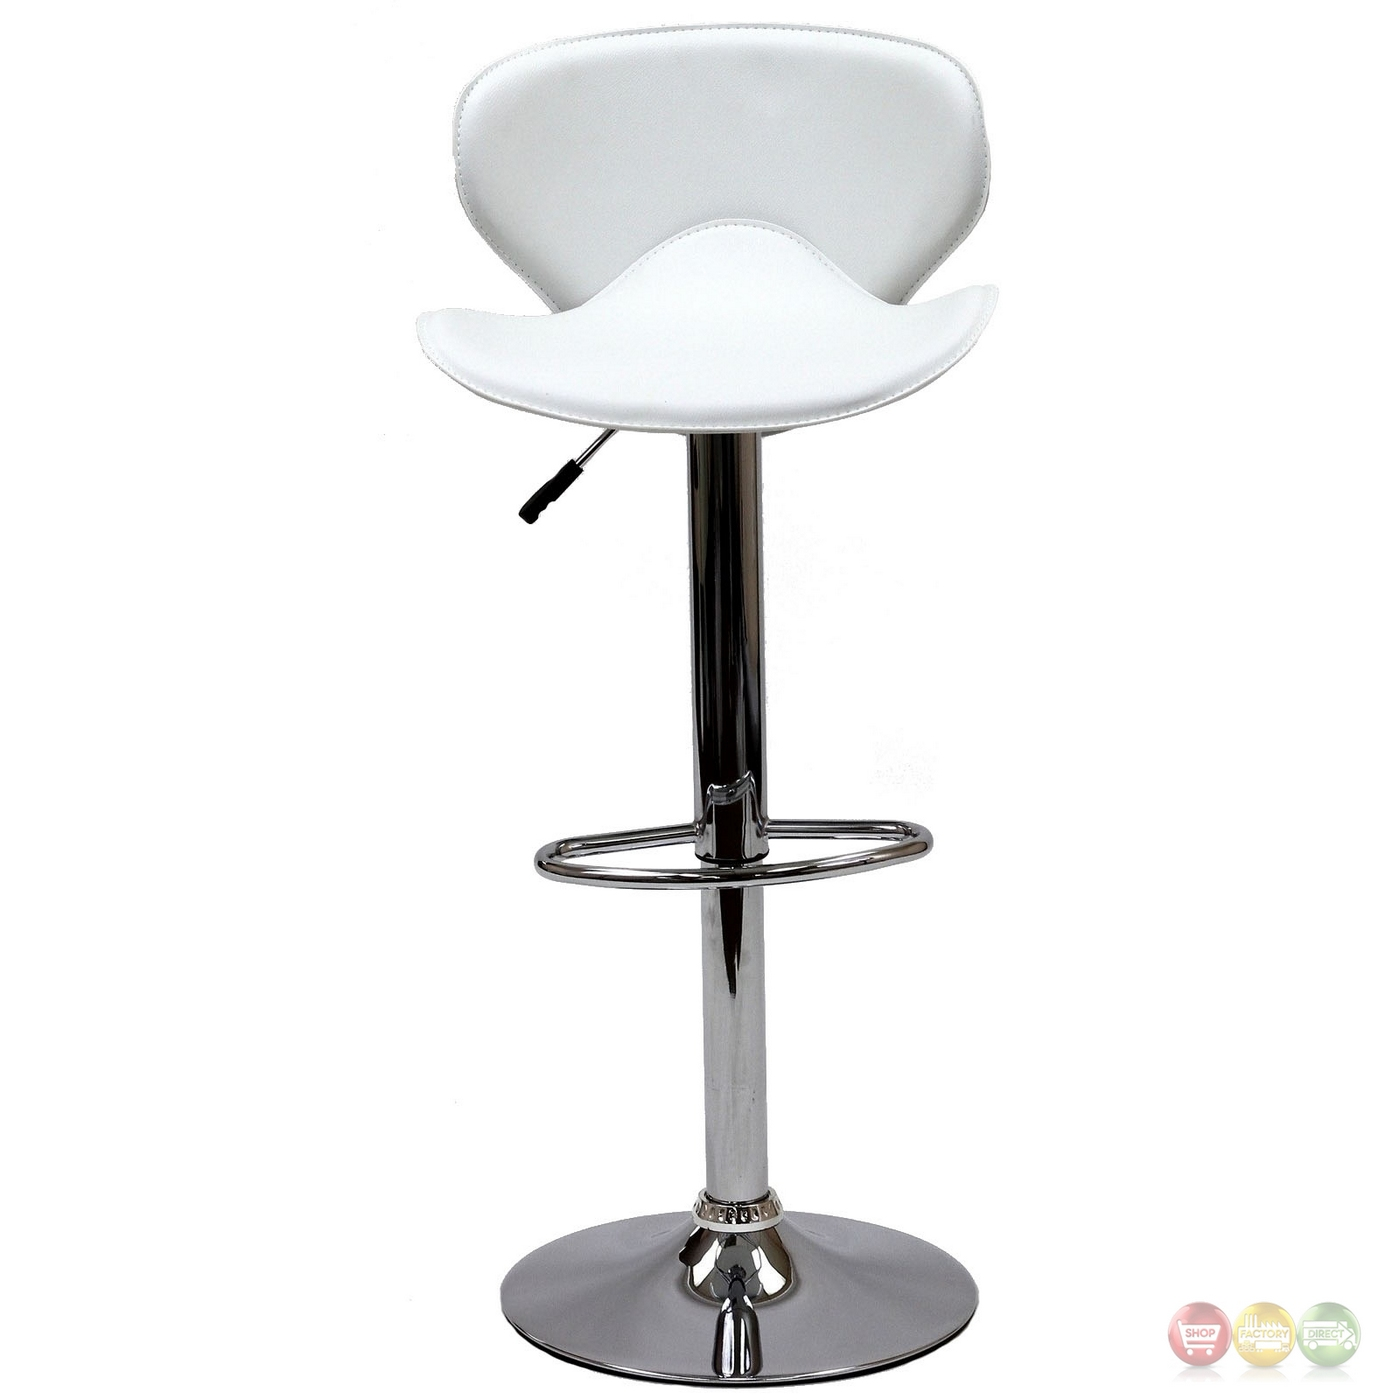 Booster Modern Ergonomic Winged Bar Stool W Chrome Base